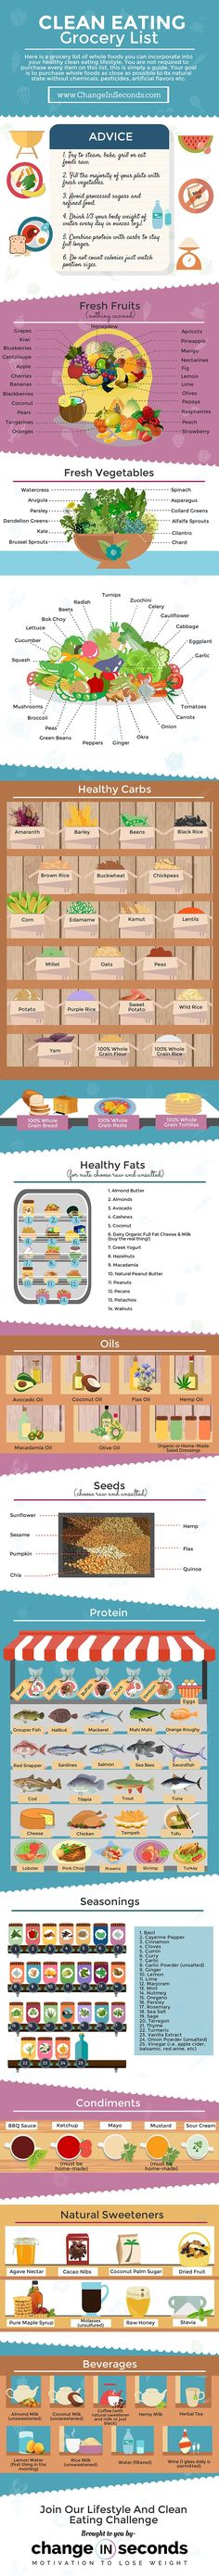 Clean Eating Grocery List Infographic (Print PDF) https://www.changeinseconds.com/clean-eating-grocery-list/ #cleaneating #glutenfree #paleo #vegan #vegetarian